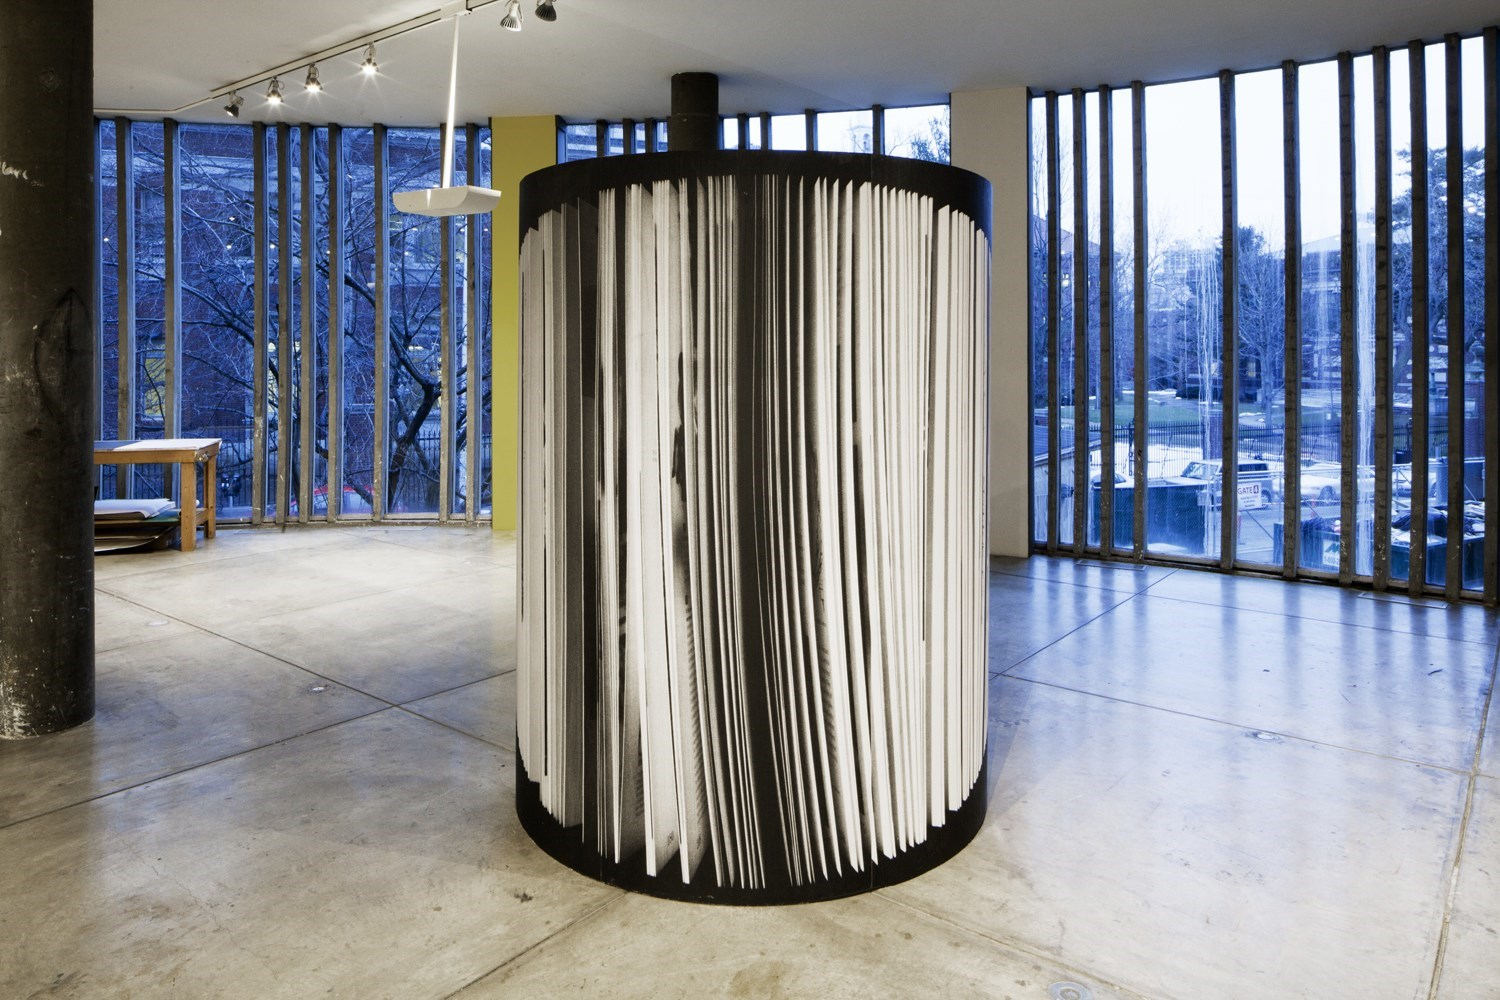 untitled (open book), 220cm x 270cm, black and white prints on wood, 2013<br />Installation view The Carpenter Center, Cambridge